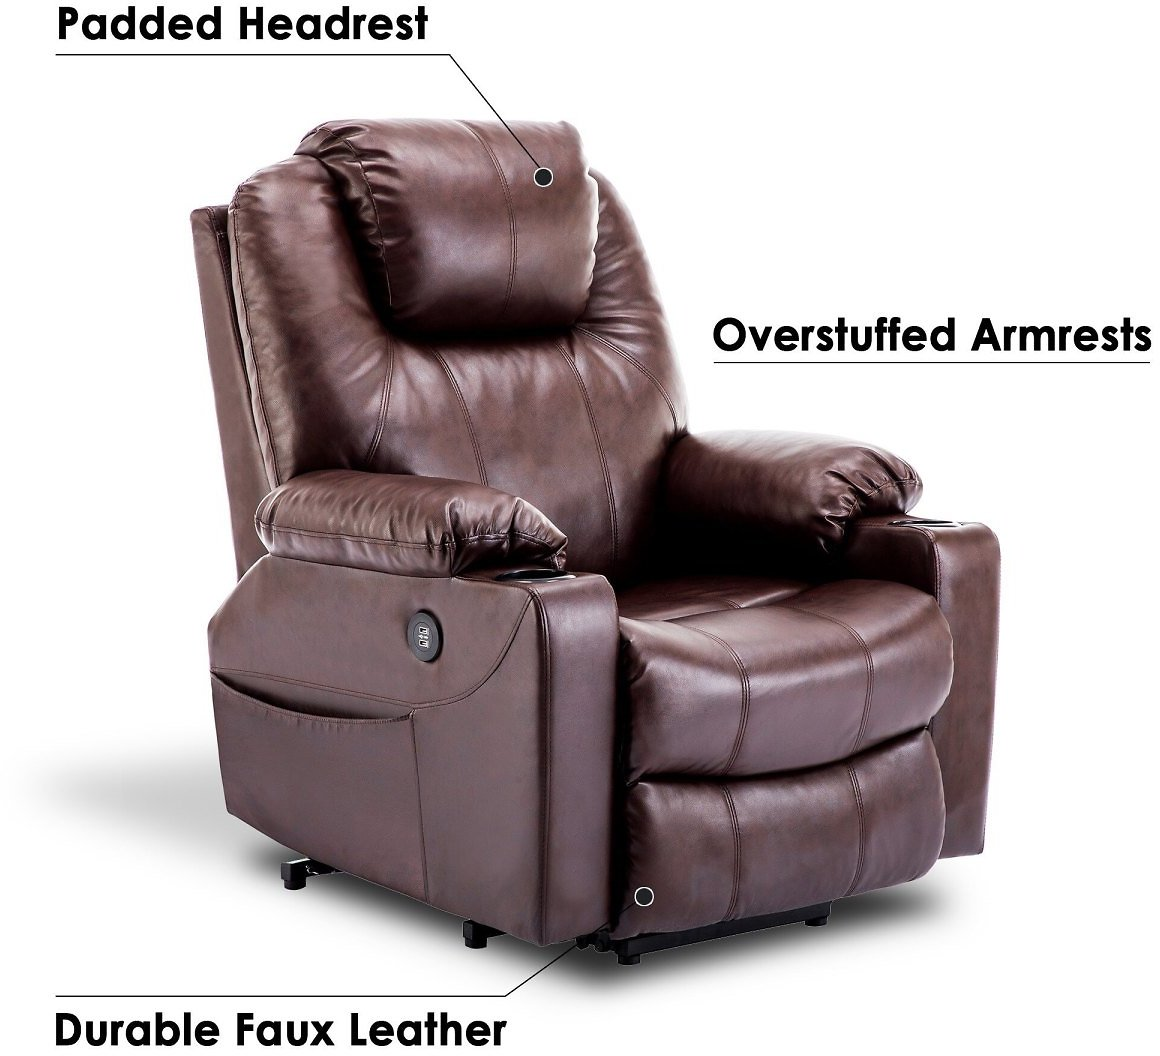 MCOMBO ELECTRIC POWER LIFT RECLINER MASSAGE SOFA HEATED CHAIR LOUNGE W/REMOTE CONTROL USB CHARGING PORTS